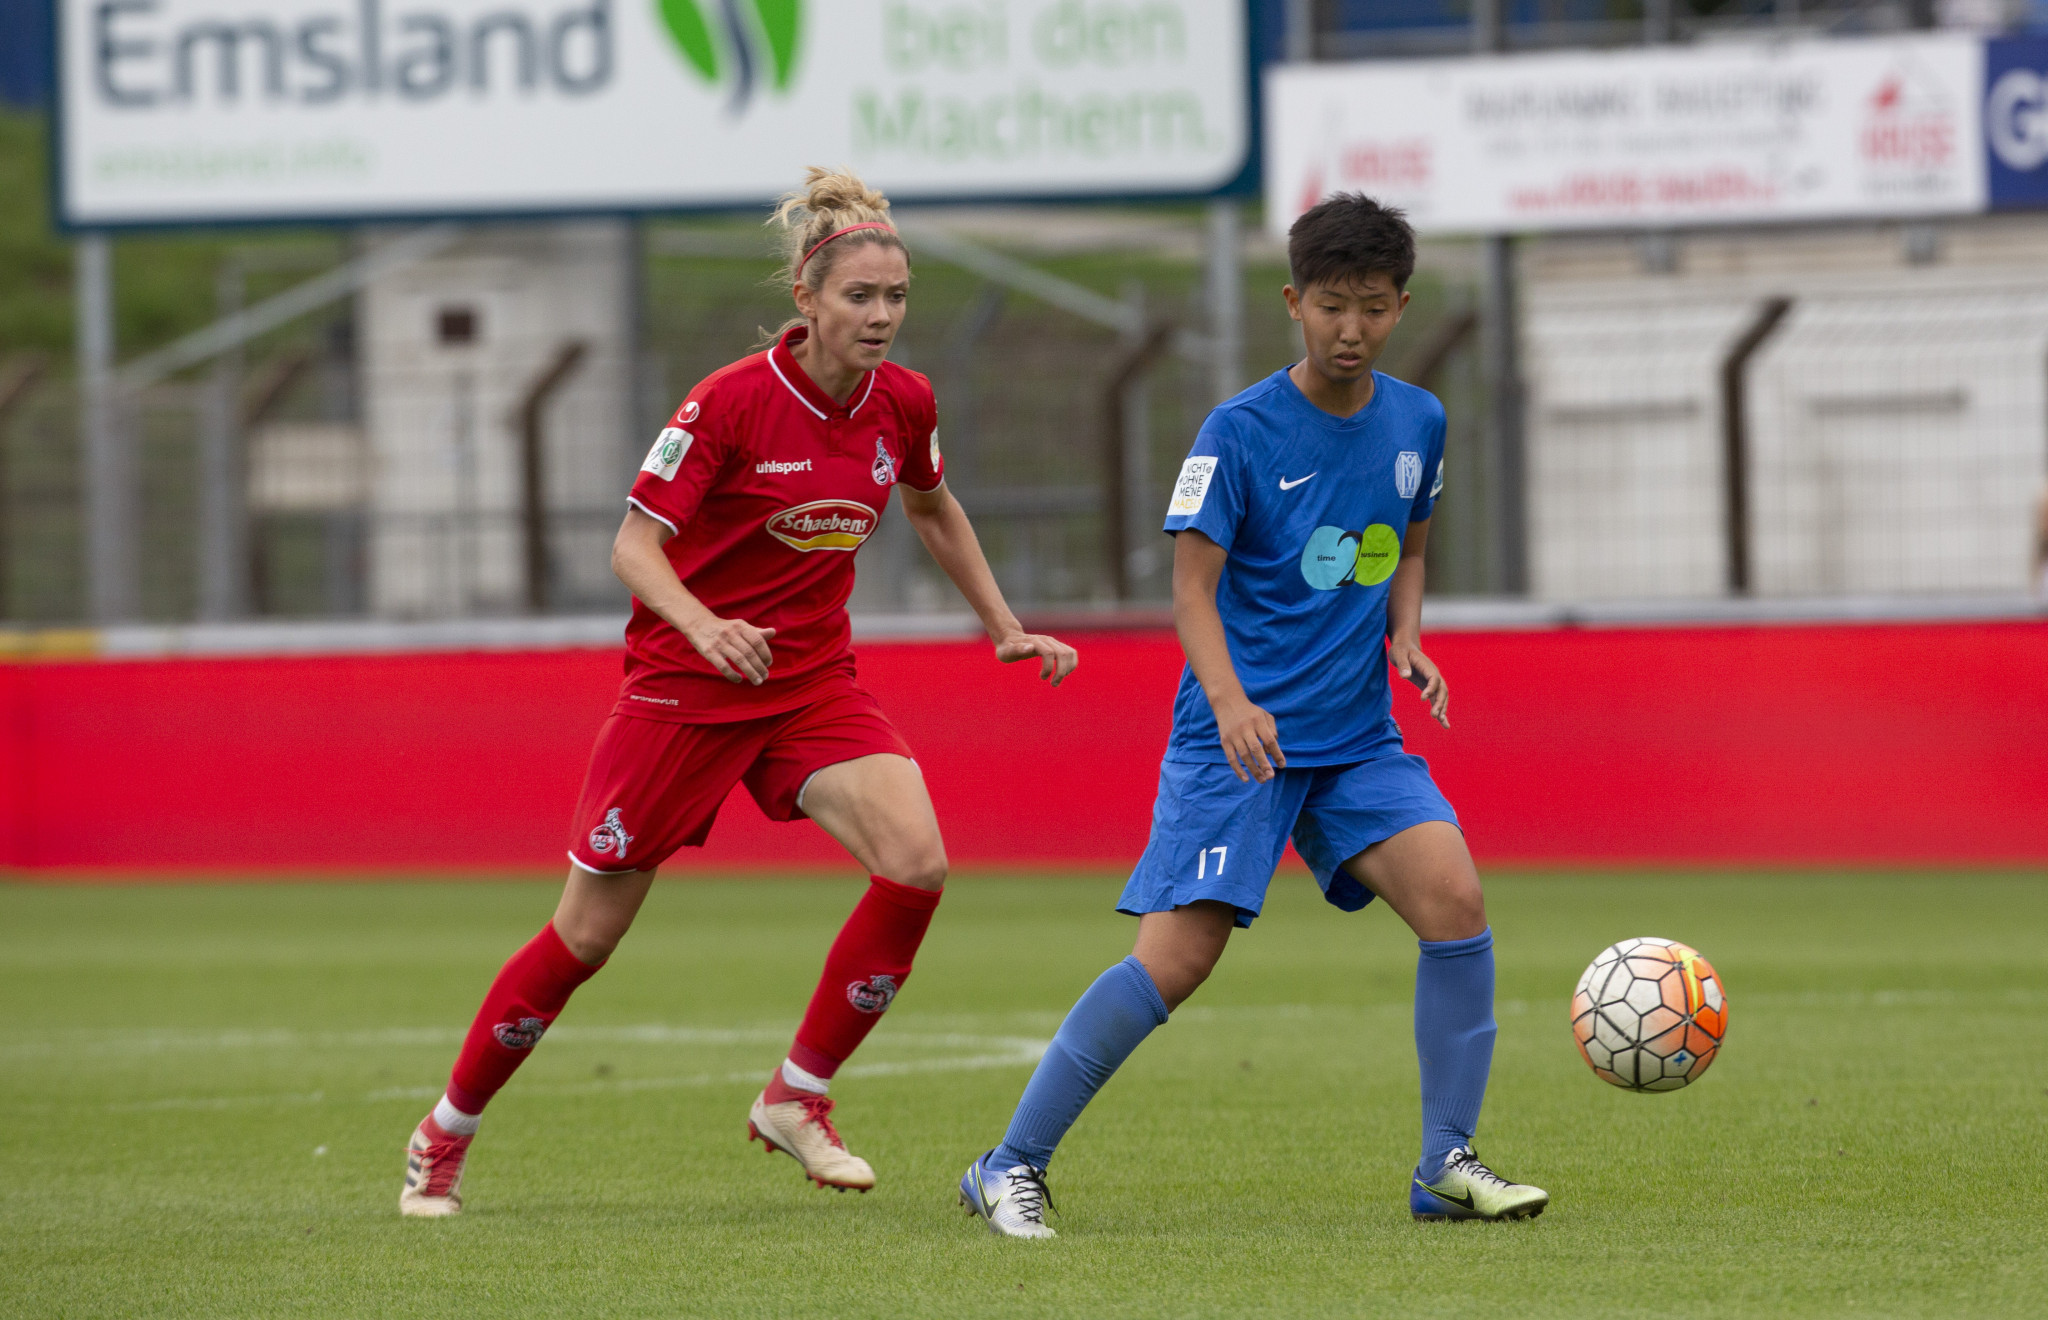 Shiho Shimoyamada plays for SV Meppen, a team in the second tier of the German Bundesliga ©Getty Images